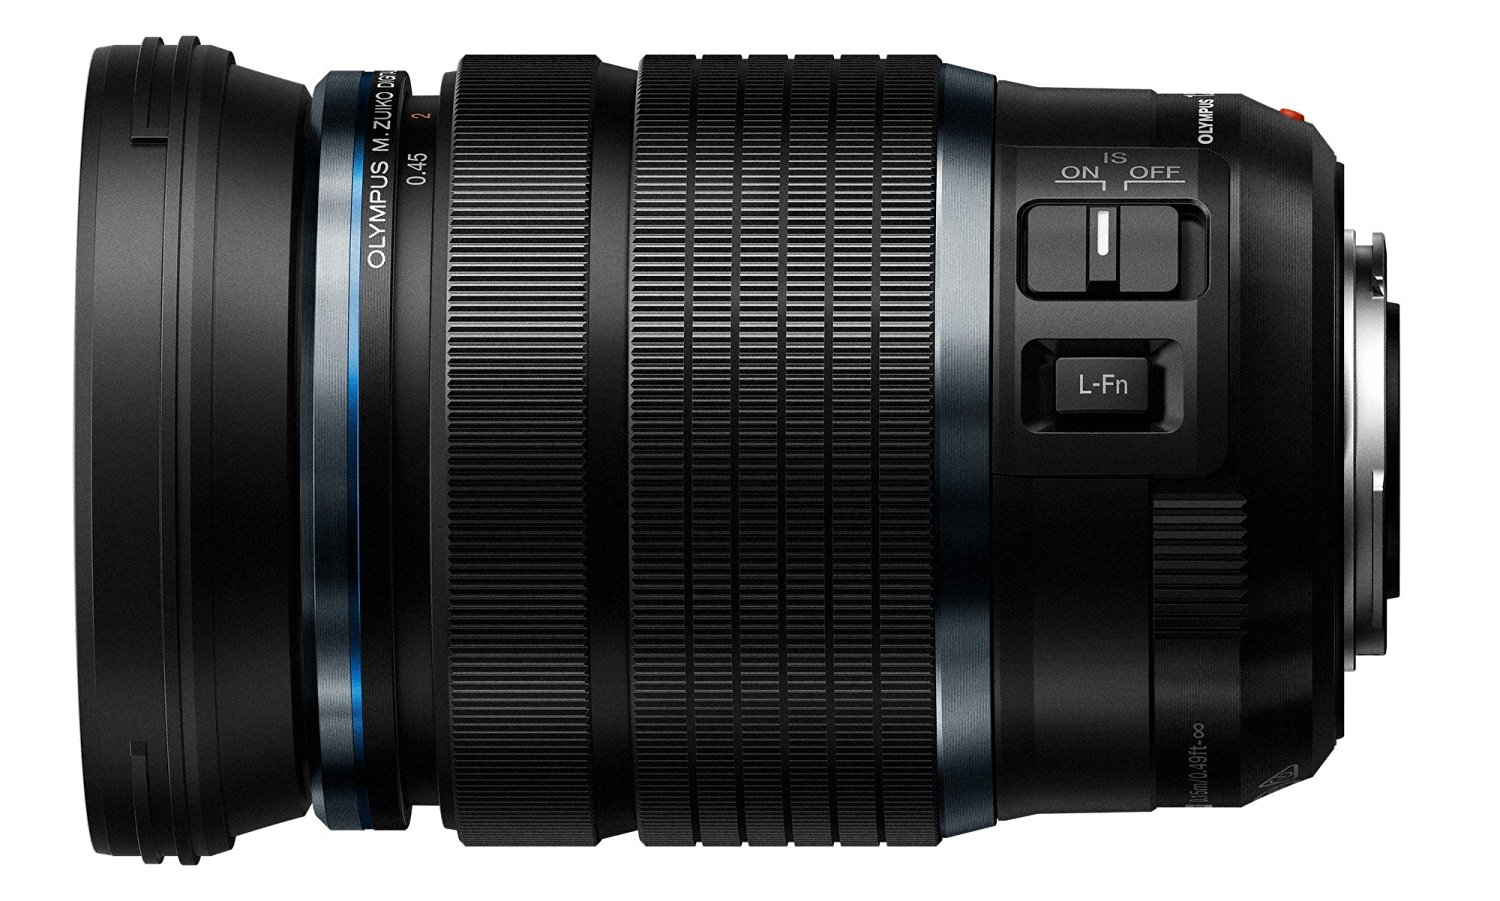 amazon product image of the 12-100mm f4.0 PRO from the side